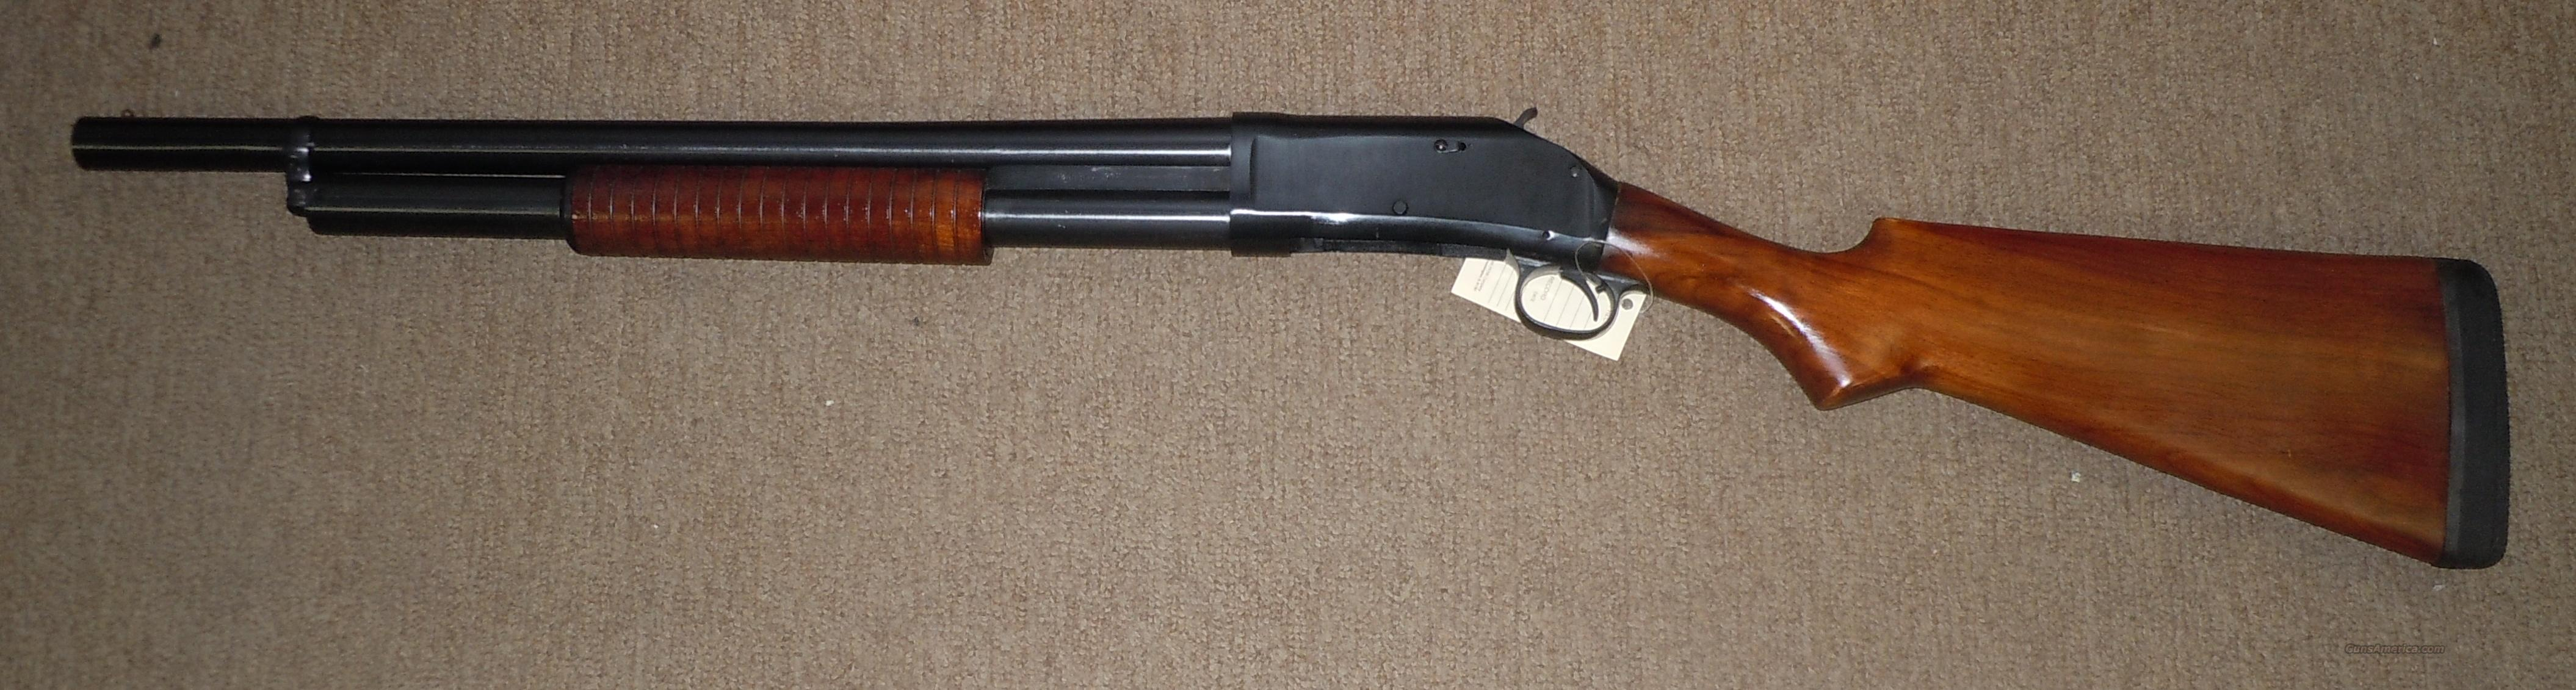 "CIMARRON (POLYTECH) 1897 12 GA PUMP SHOTGUN 20"" BARREL  Guns > Shotguns > Cimmaron Shotguns"